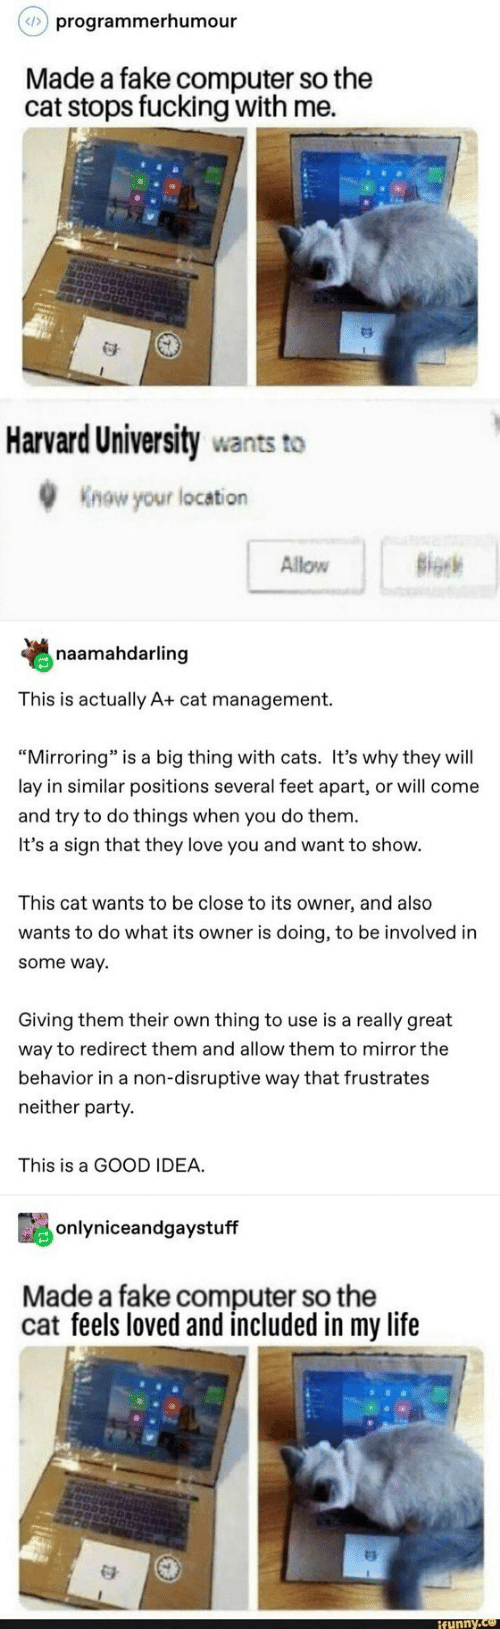 """Life Funny: programmerhumour  Made a fake computer so the  cat stops fucking with me.  Harvard University wants to  Know your location  Allow B  naamahdarling  This is actually A+ cat management.  """"Mirroring"""" is a big thing with cats. It's why they will  lay in similar positions several feet apart, or will come  and try to do things when you do them  It's a sign that they love you and want to show.  This cat wants to be close to its owner, and also  wants to do what its owner is doing, to be involved in  some way  Giving them their own thing to use is a really great  way to redirect them and allow them to mirror the  behavior in a non-disruptive way that frustrates  neither party.  This is a GOOD IDEA.  onlyniceandgaystuff  Made a fake computer so the  cat feels loved and included in my life  funny"""